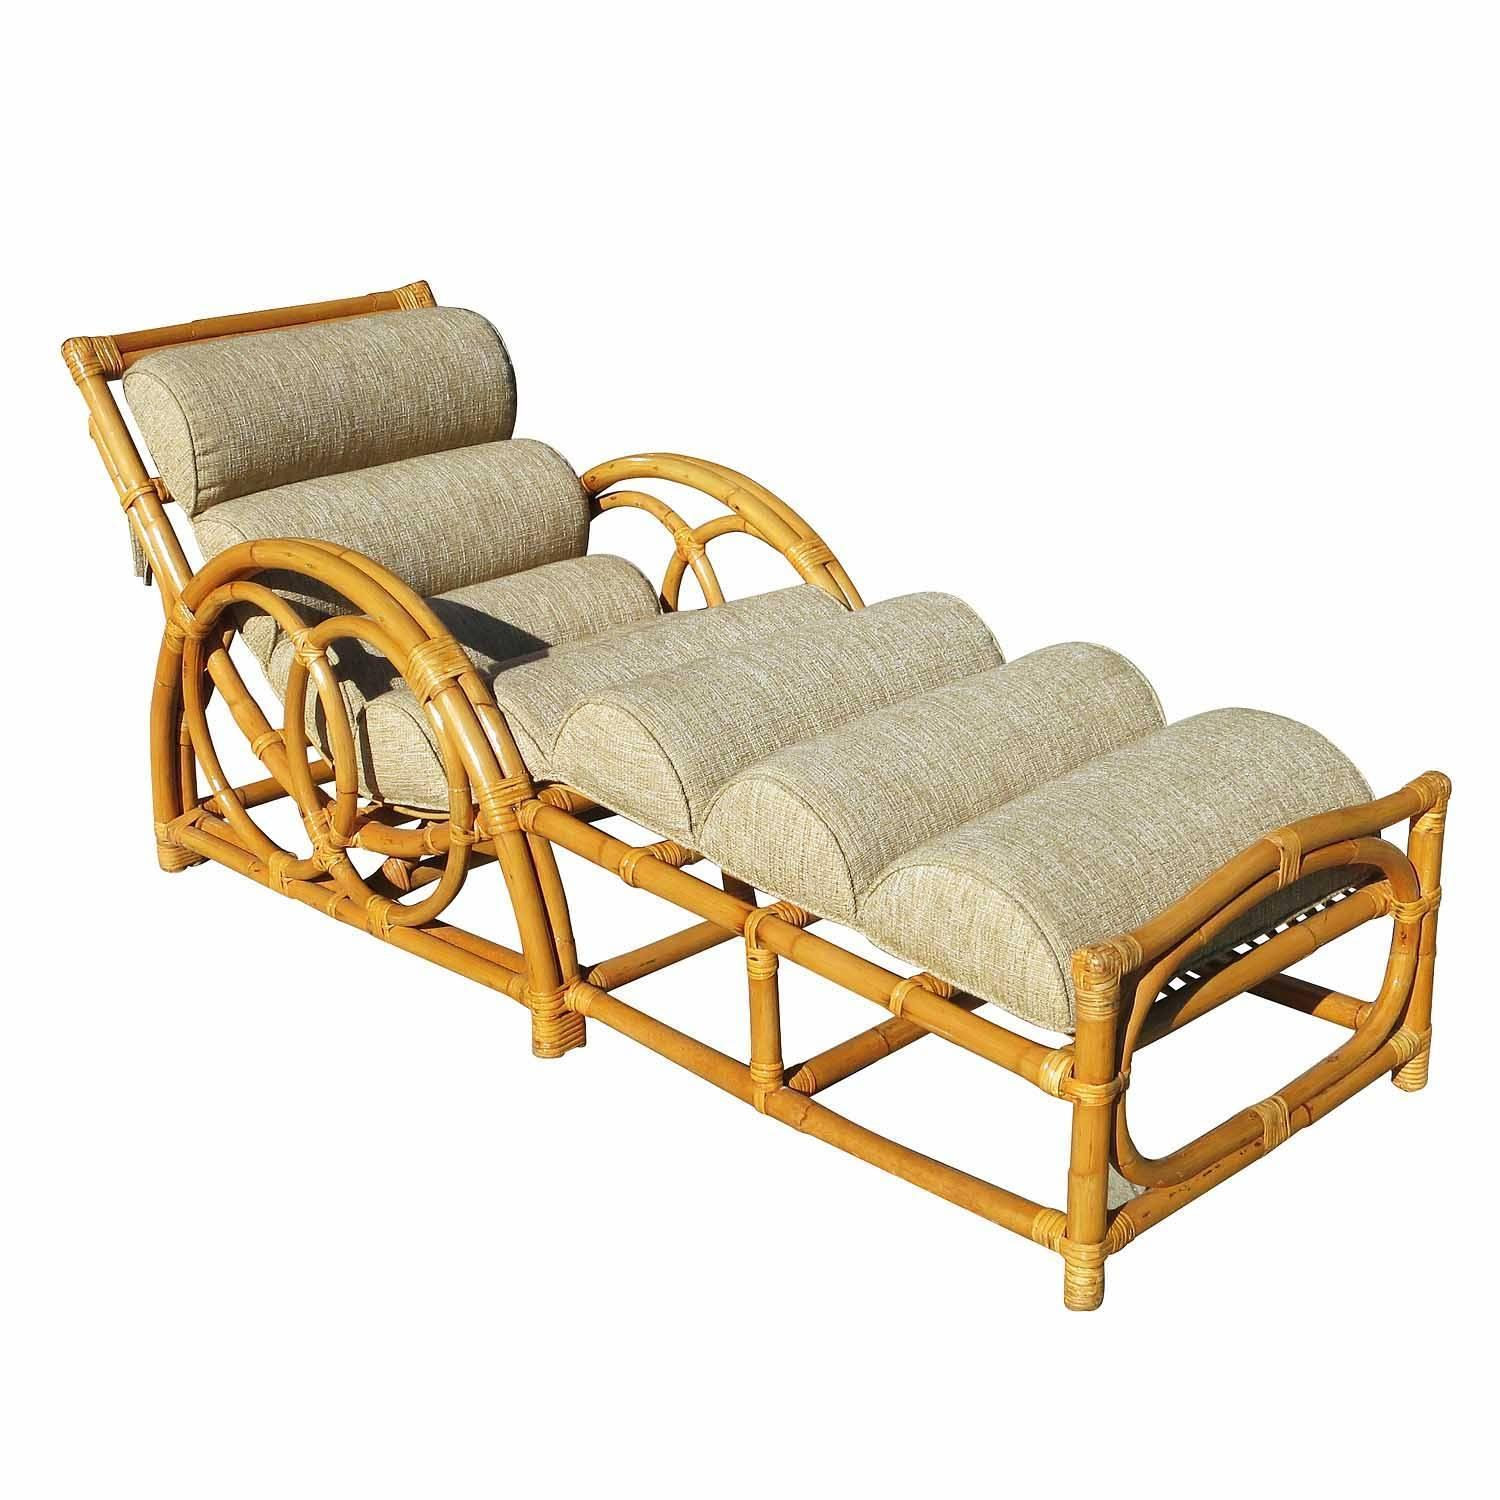 Half moon rattan chaise longue chair chairish for Chaise longue northern ireland